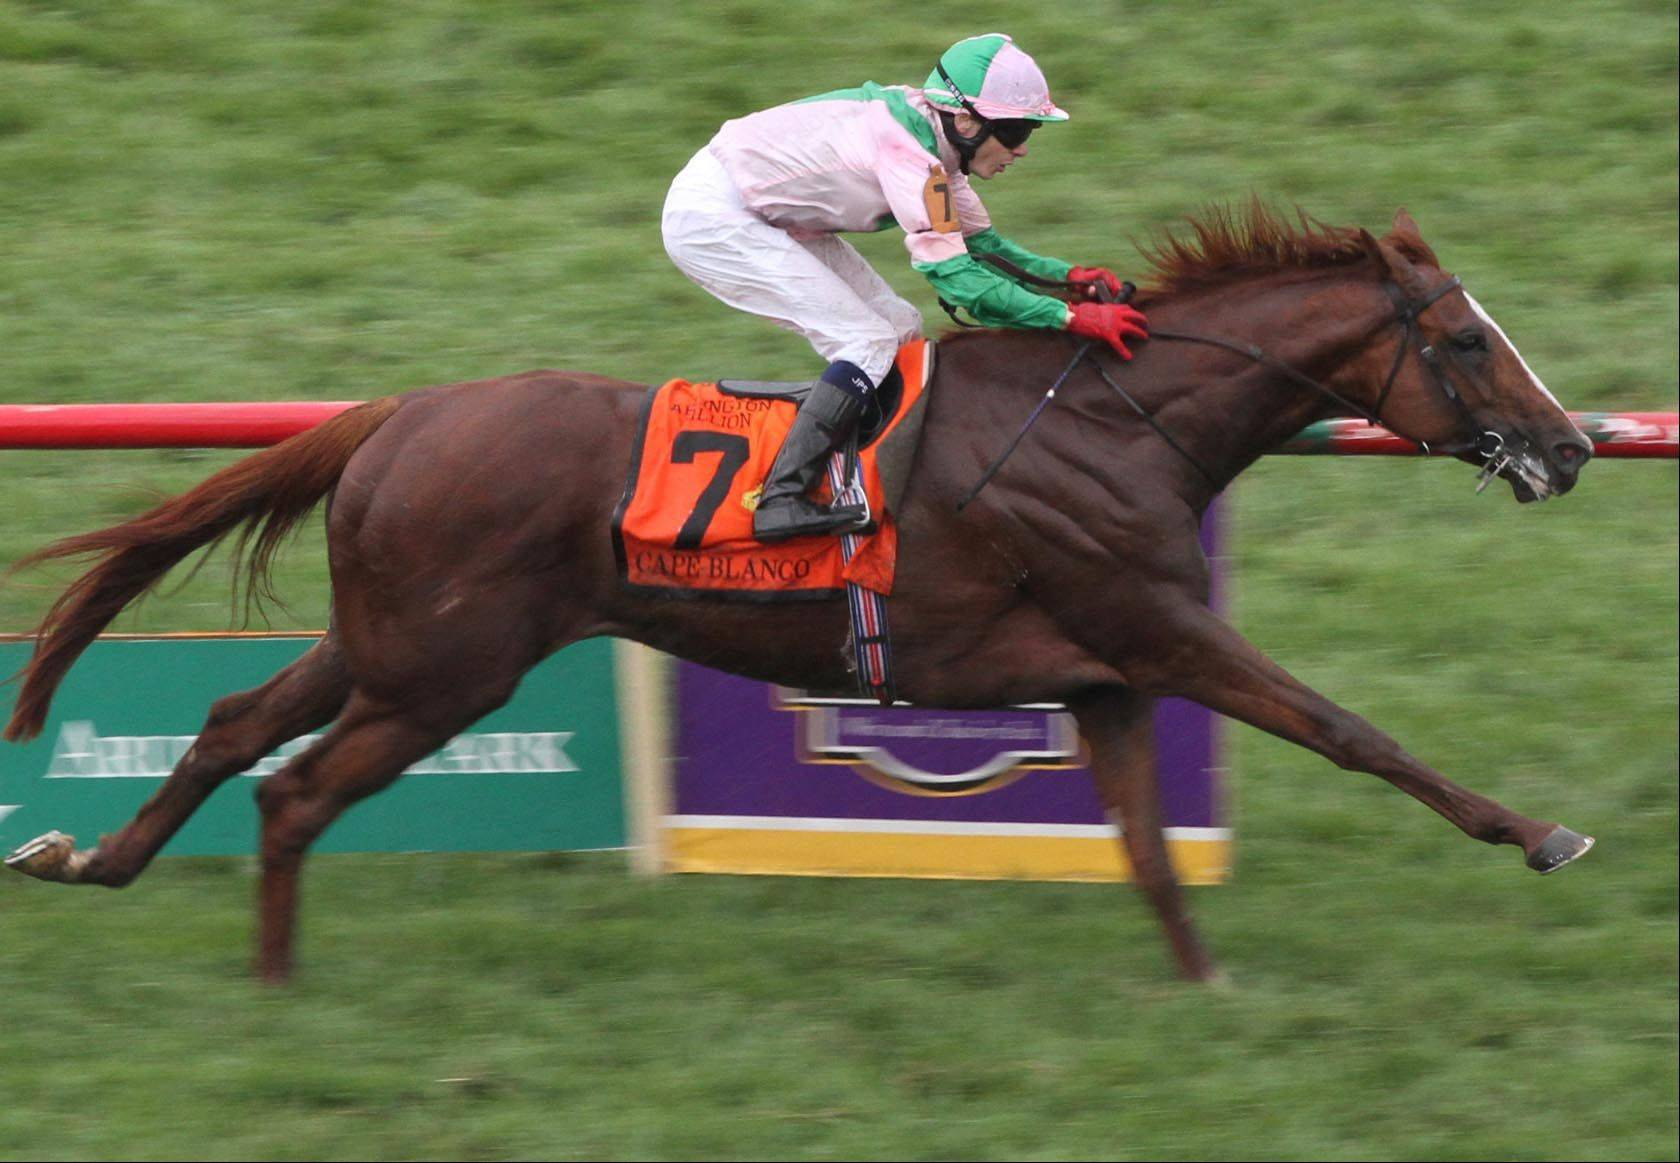 Jamie Spencer, riding Cape Blanco, won the Arlington Million at Arlington Park in 2011. Who will win this year's race on Saturday? Our experts offer differing opinions.